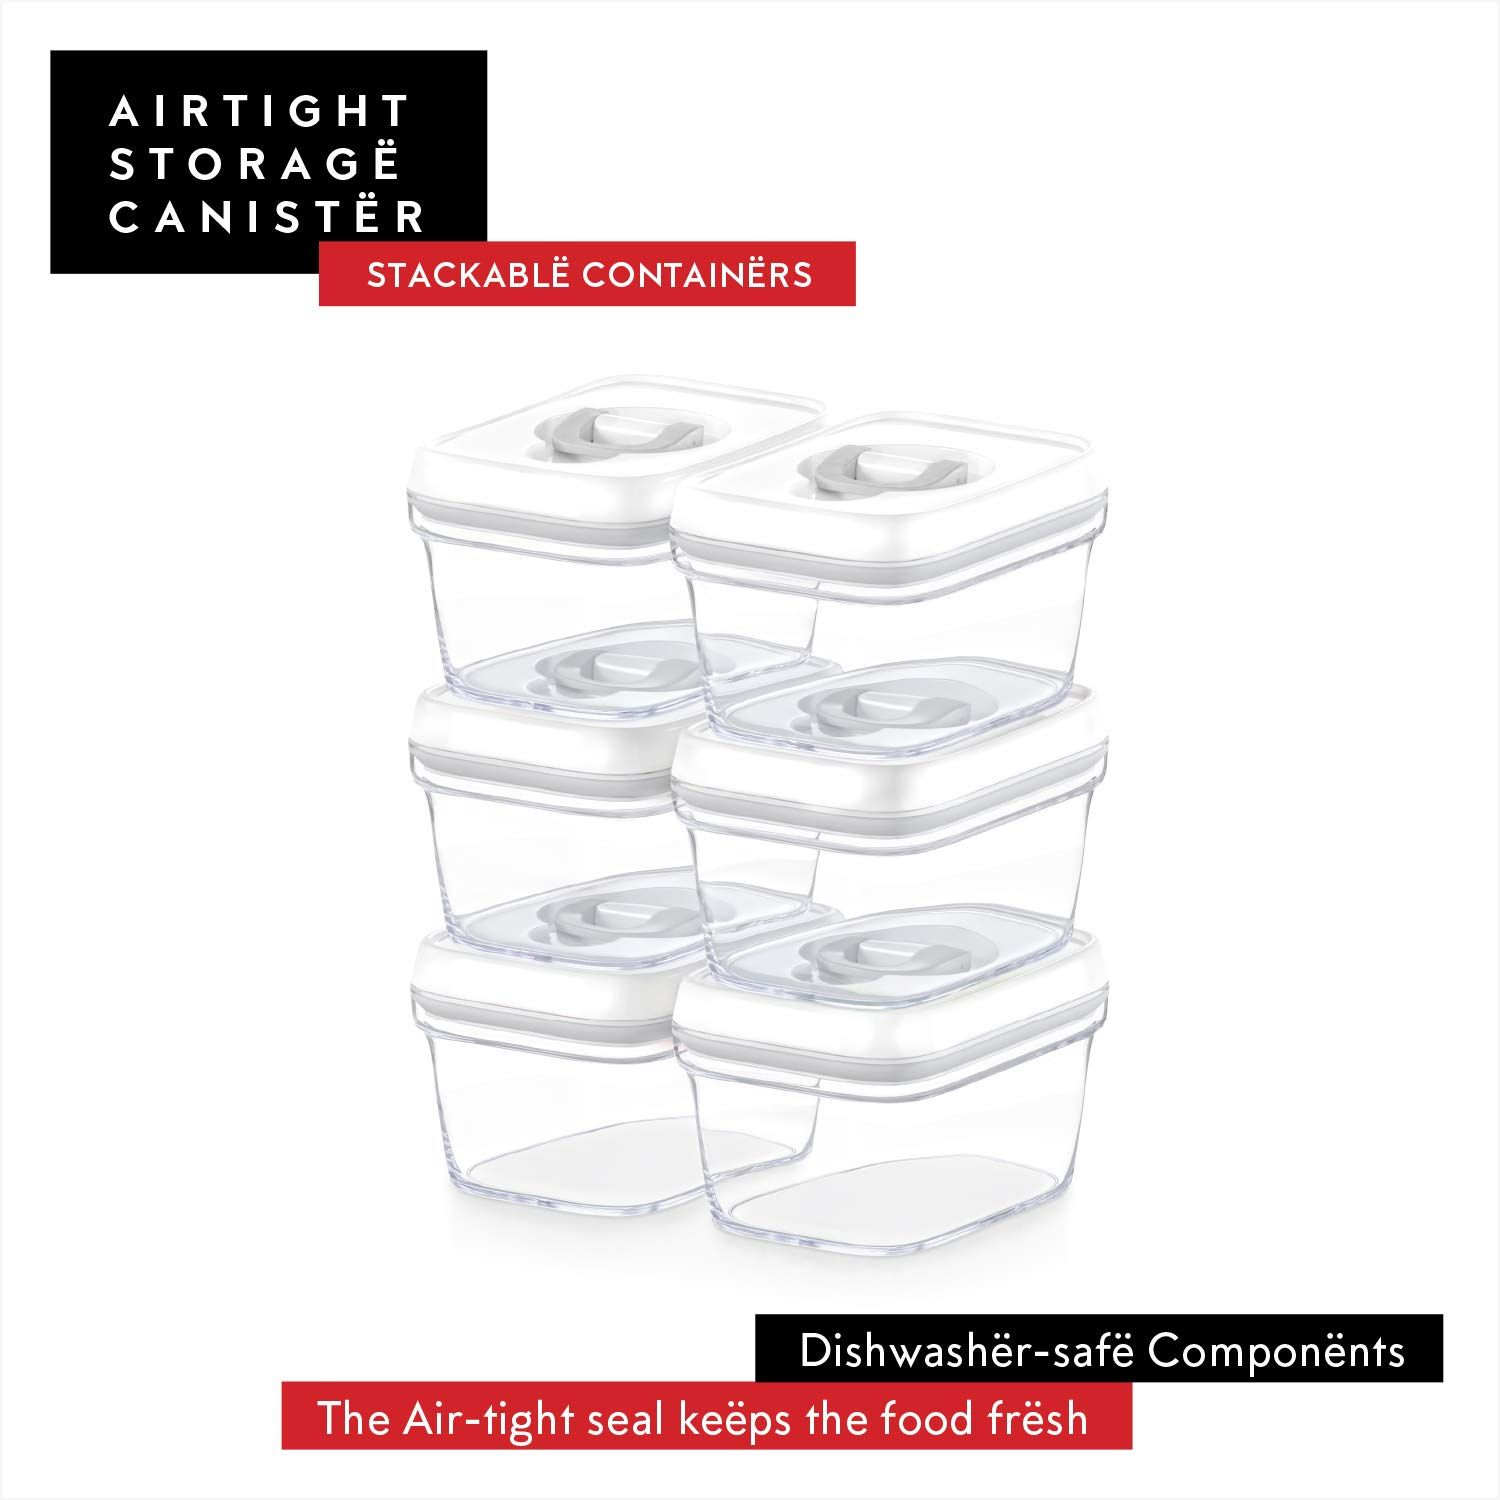 DWÃ‹LLZA KITCHEN Airtight Food Storage Containers with